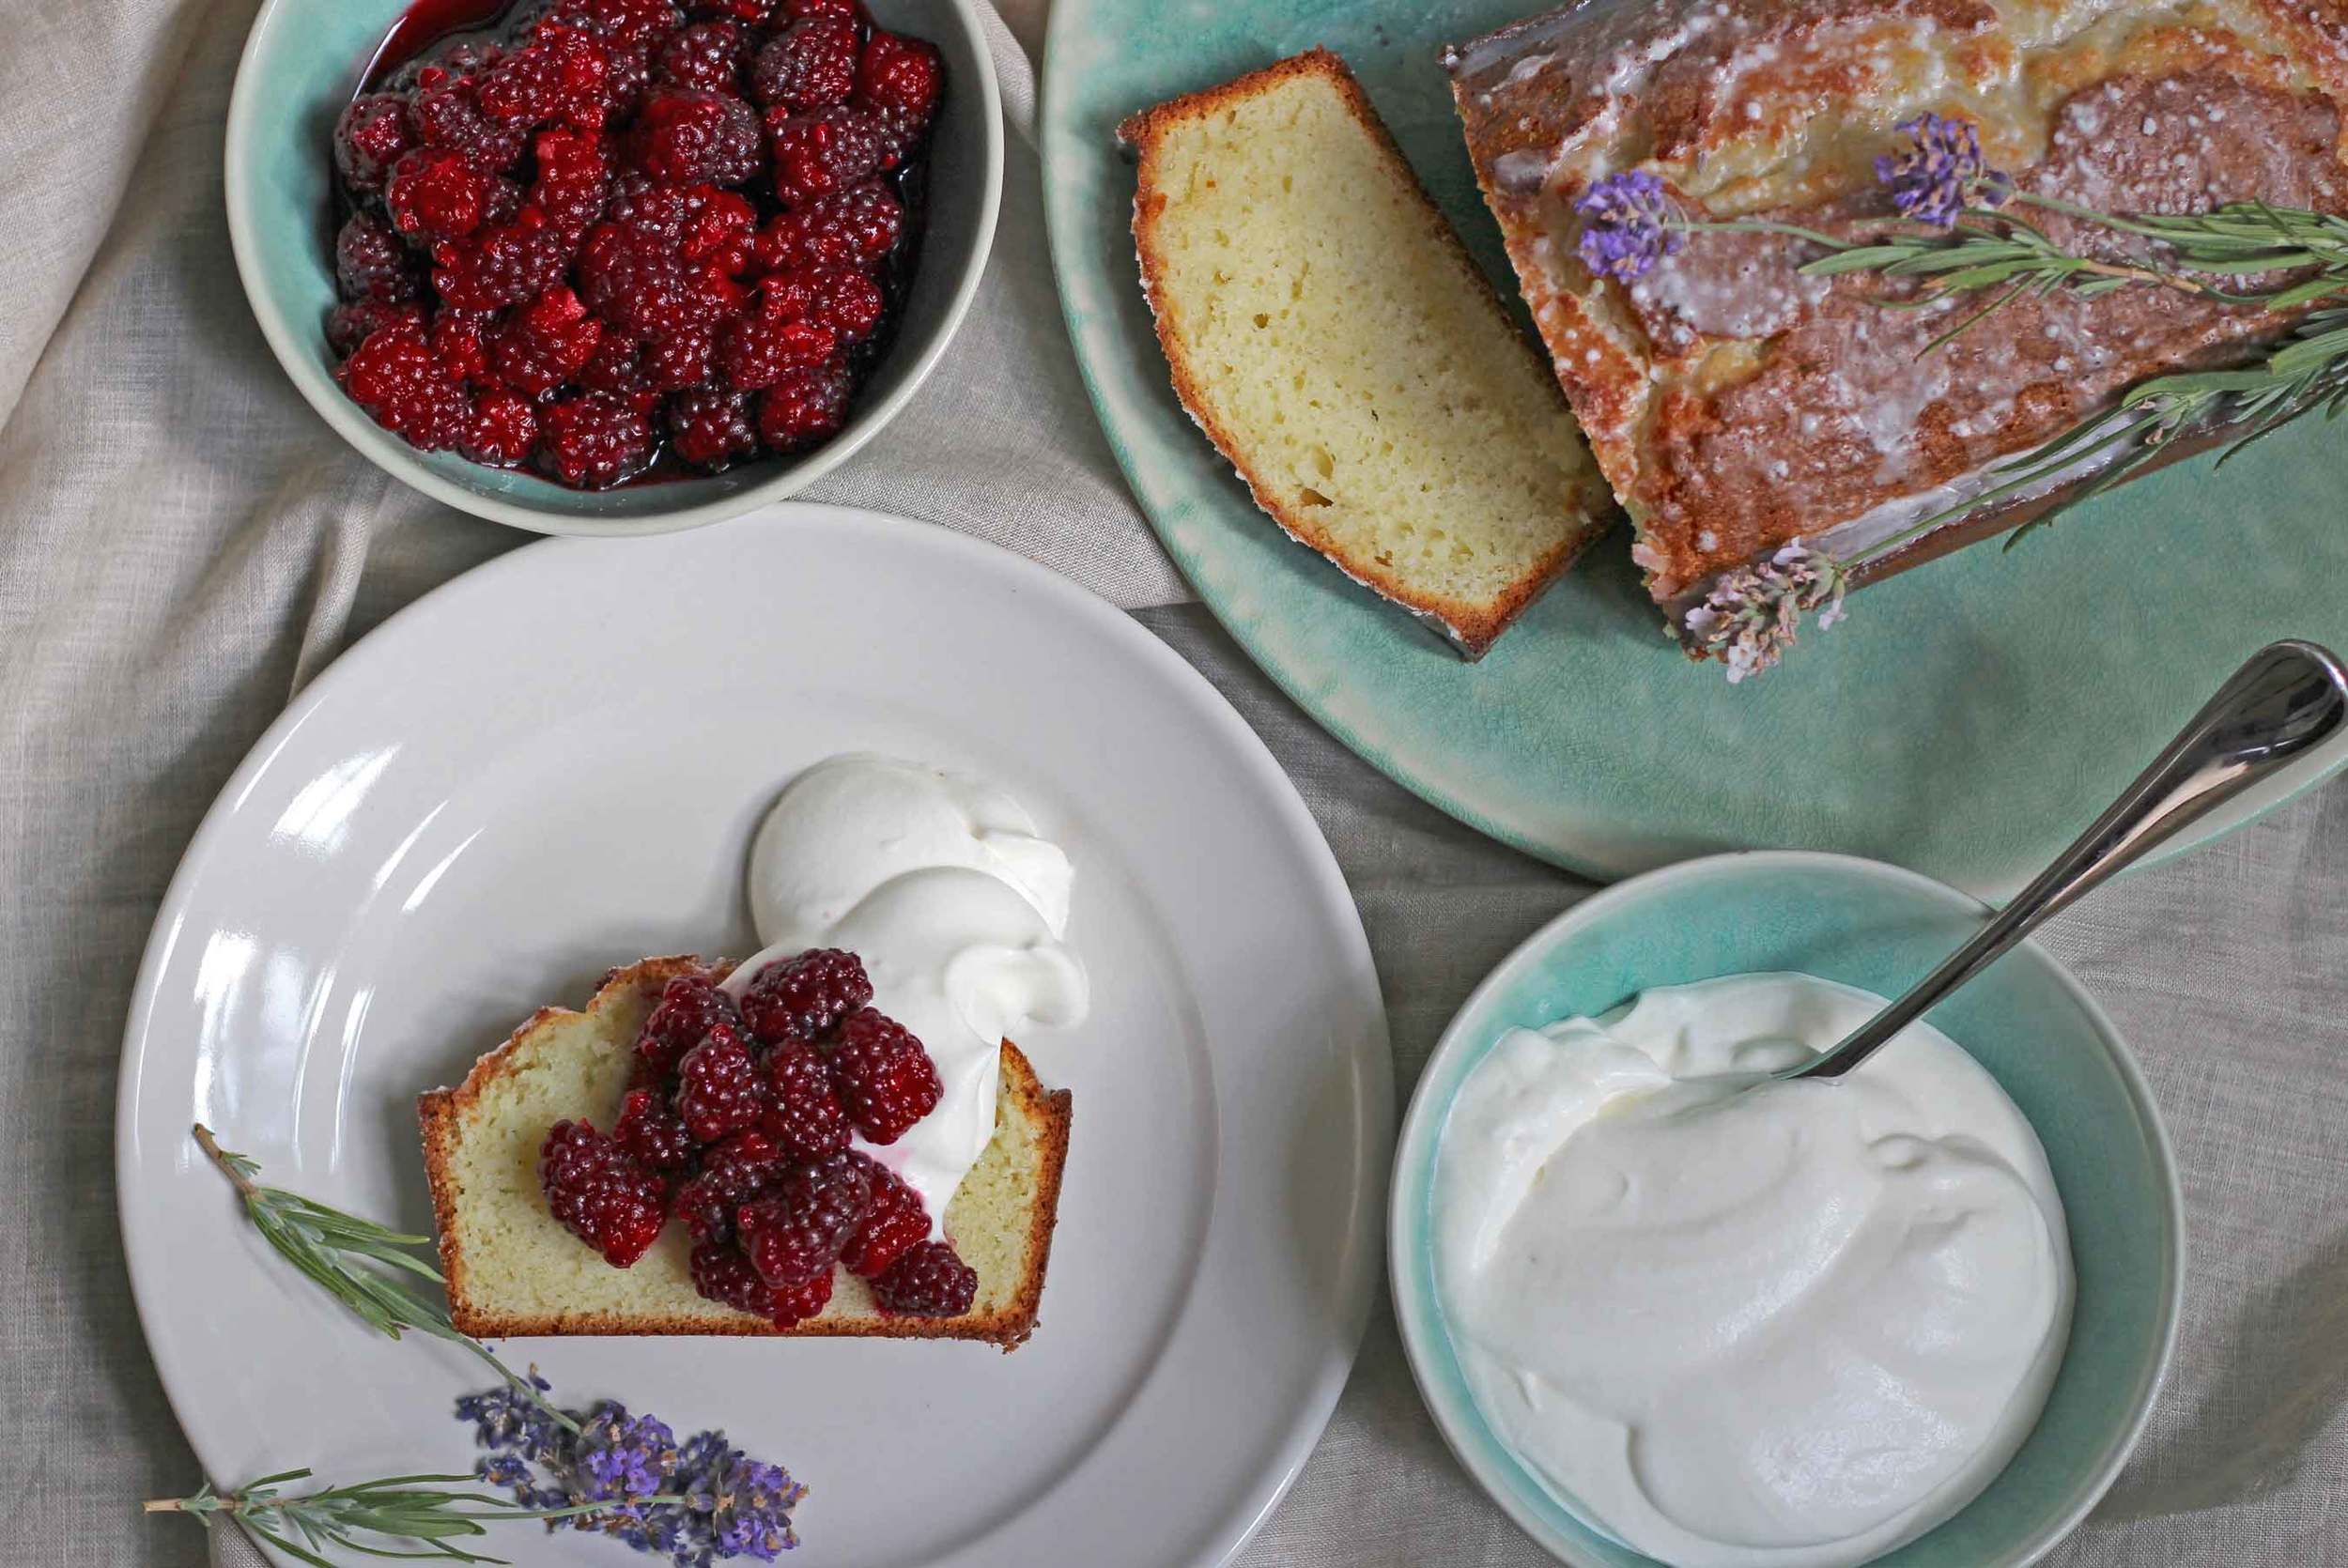 Components of Lavender Pound cake with Tayberries and Whipped Cream, recipe at Thread & Whisk blog